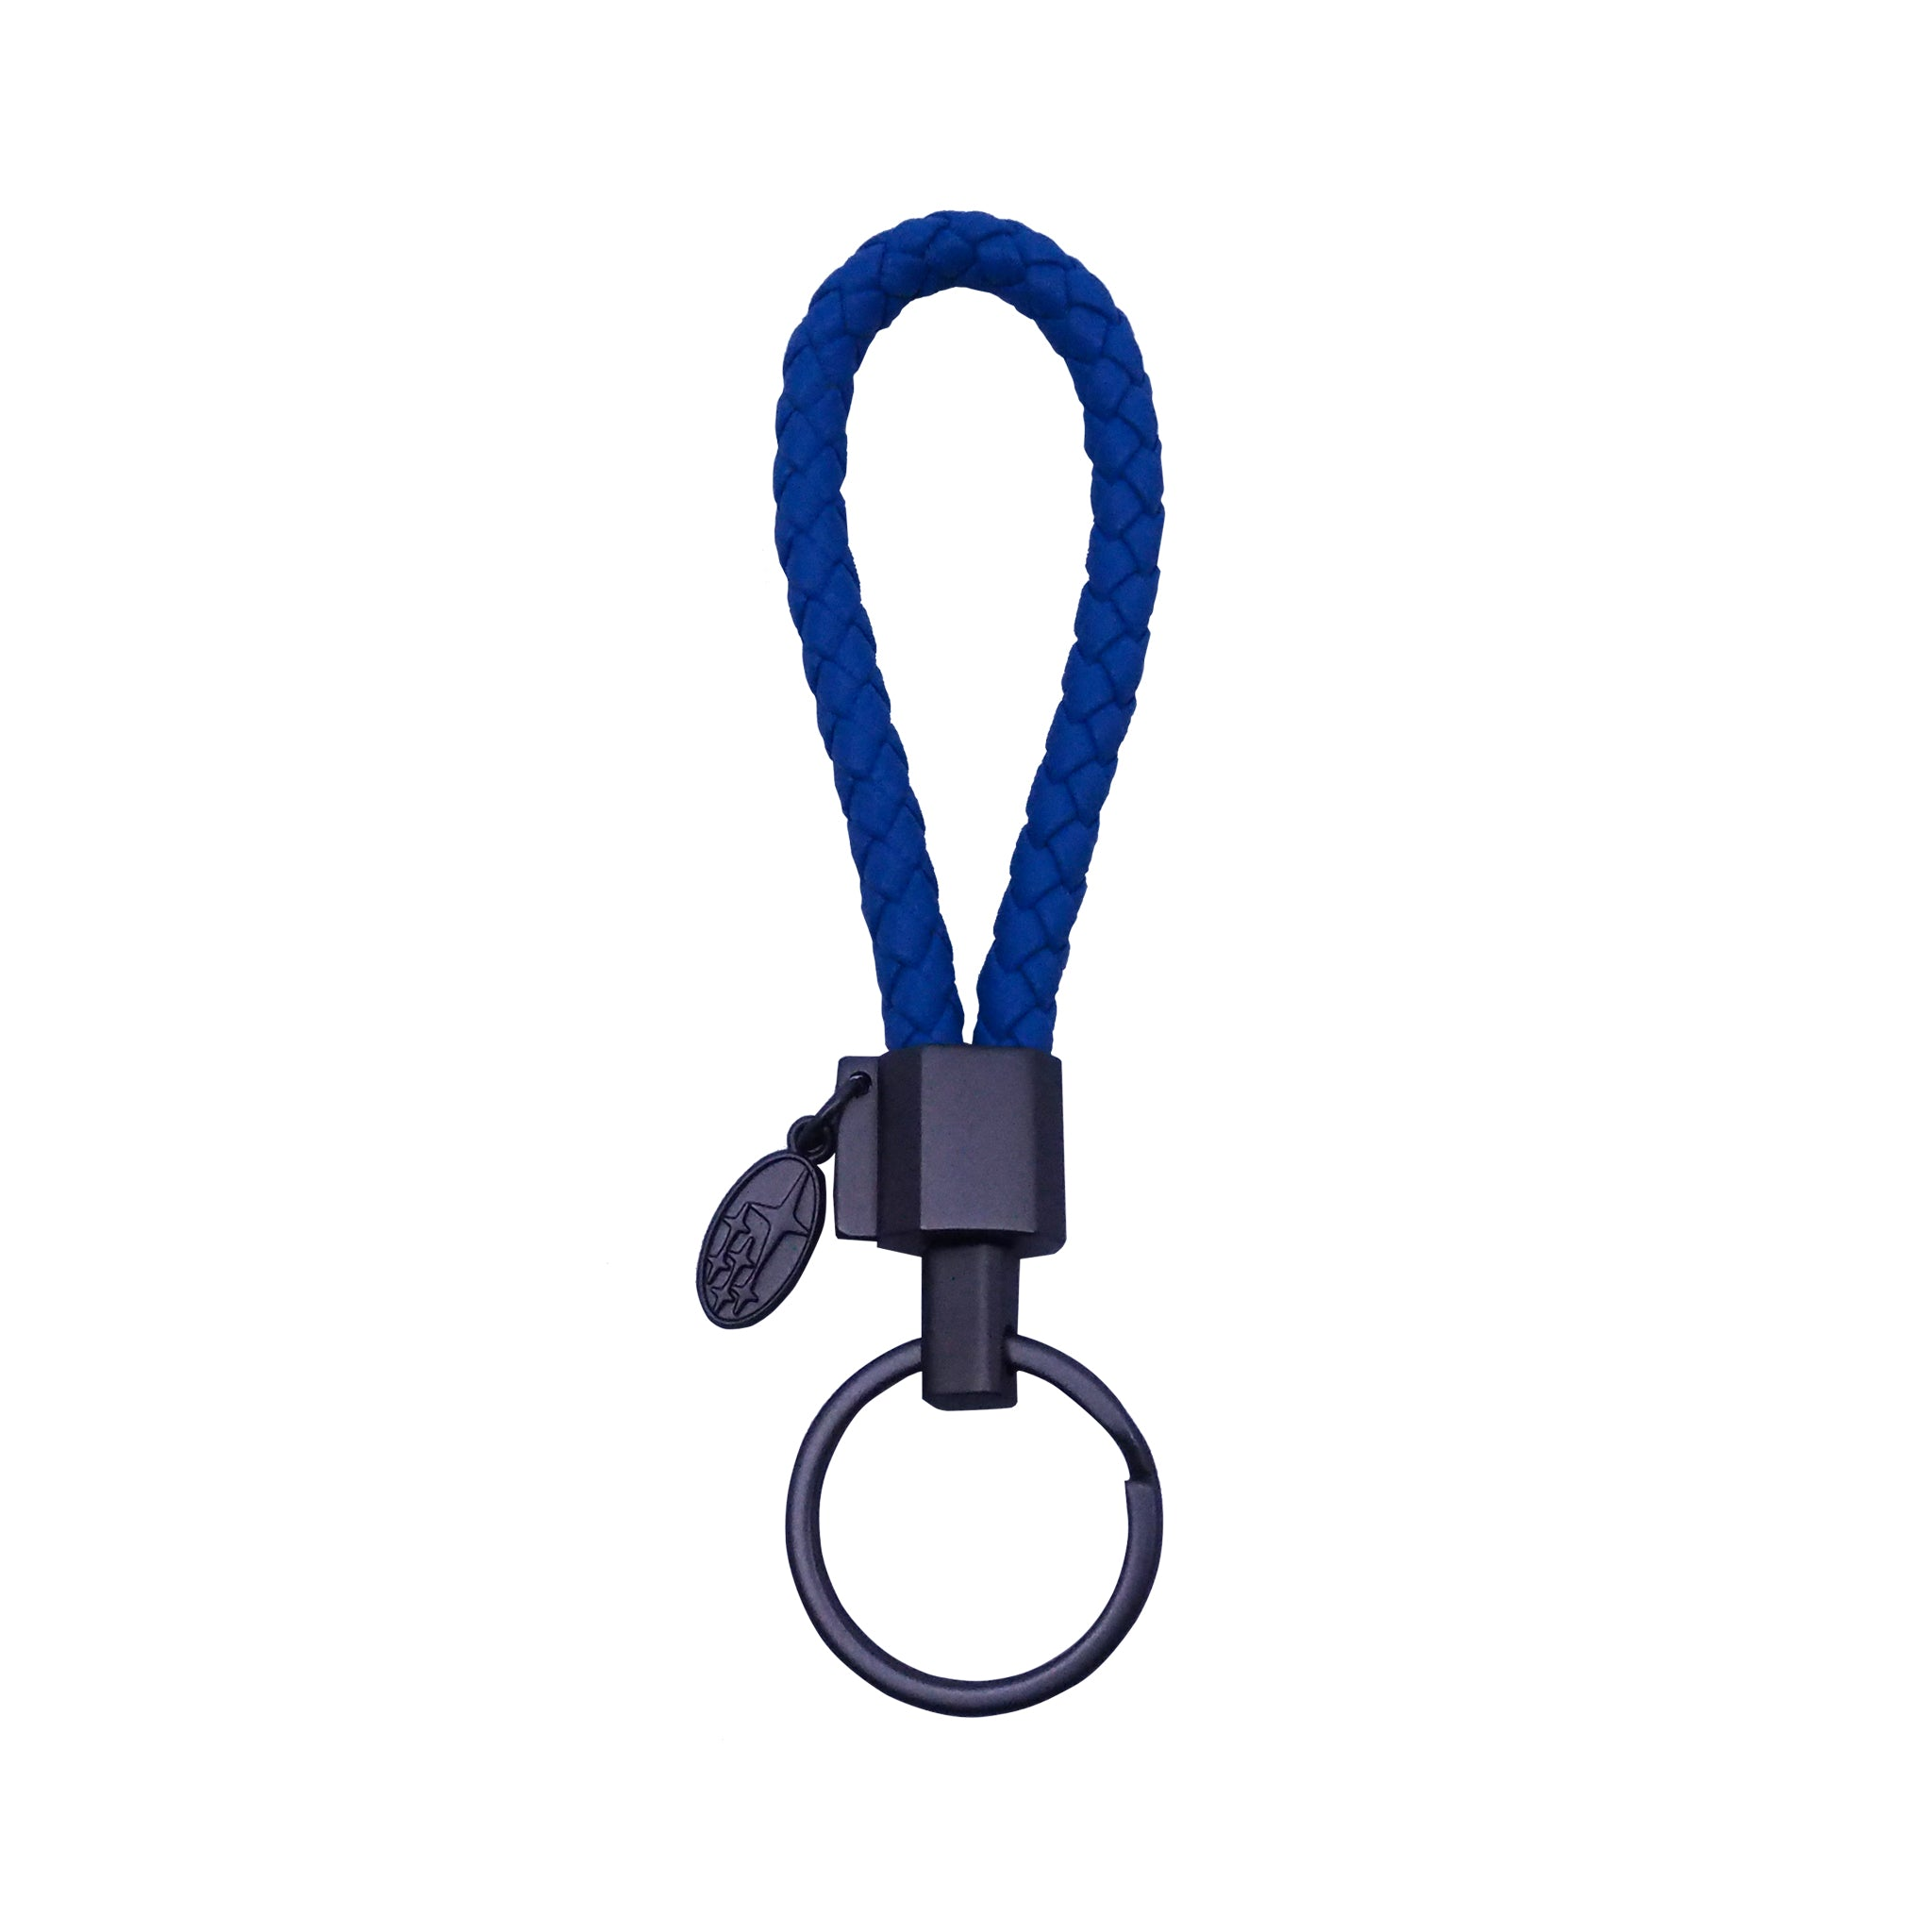 Subaru Braided Rope Keychain